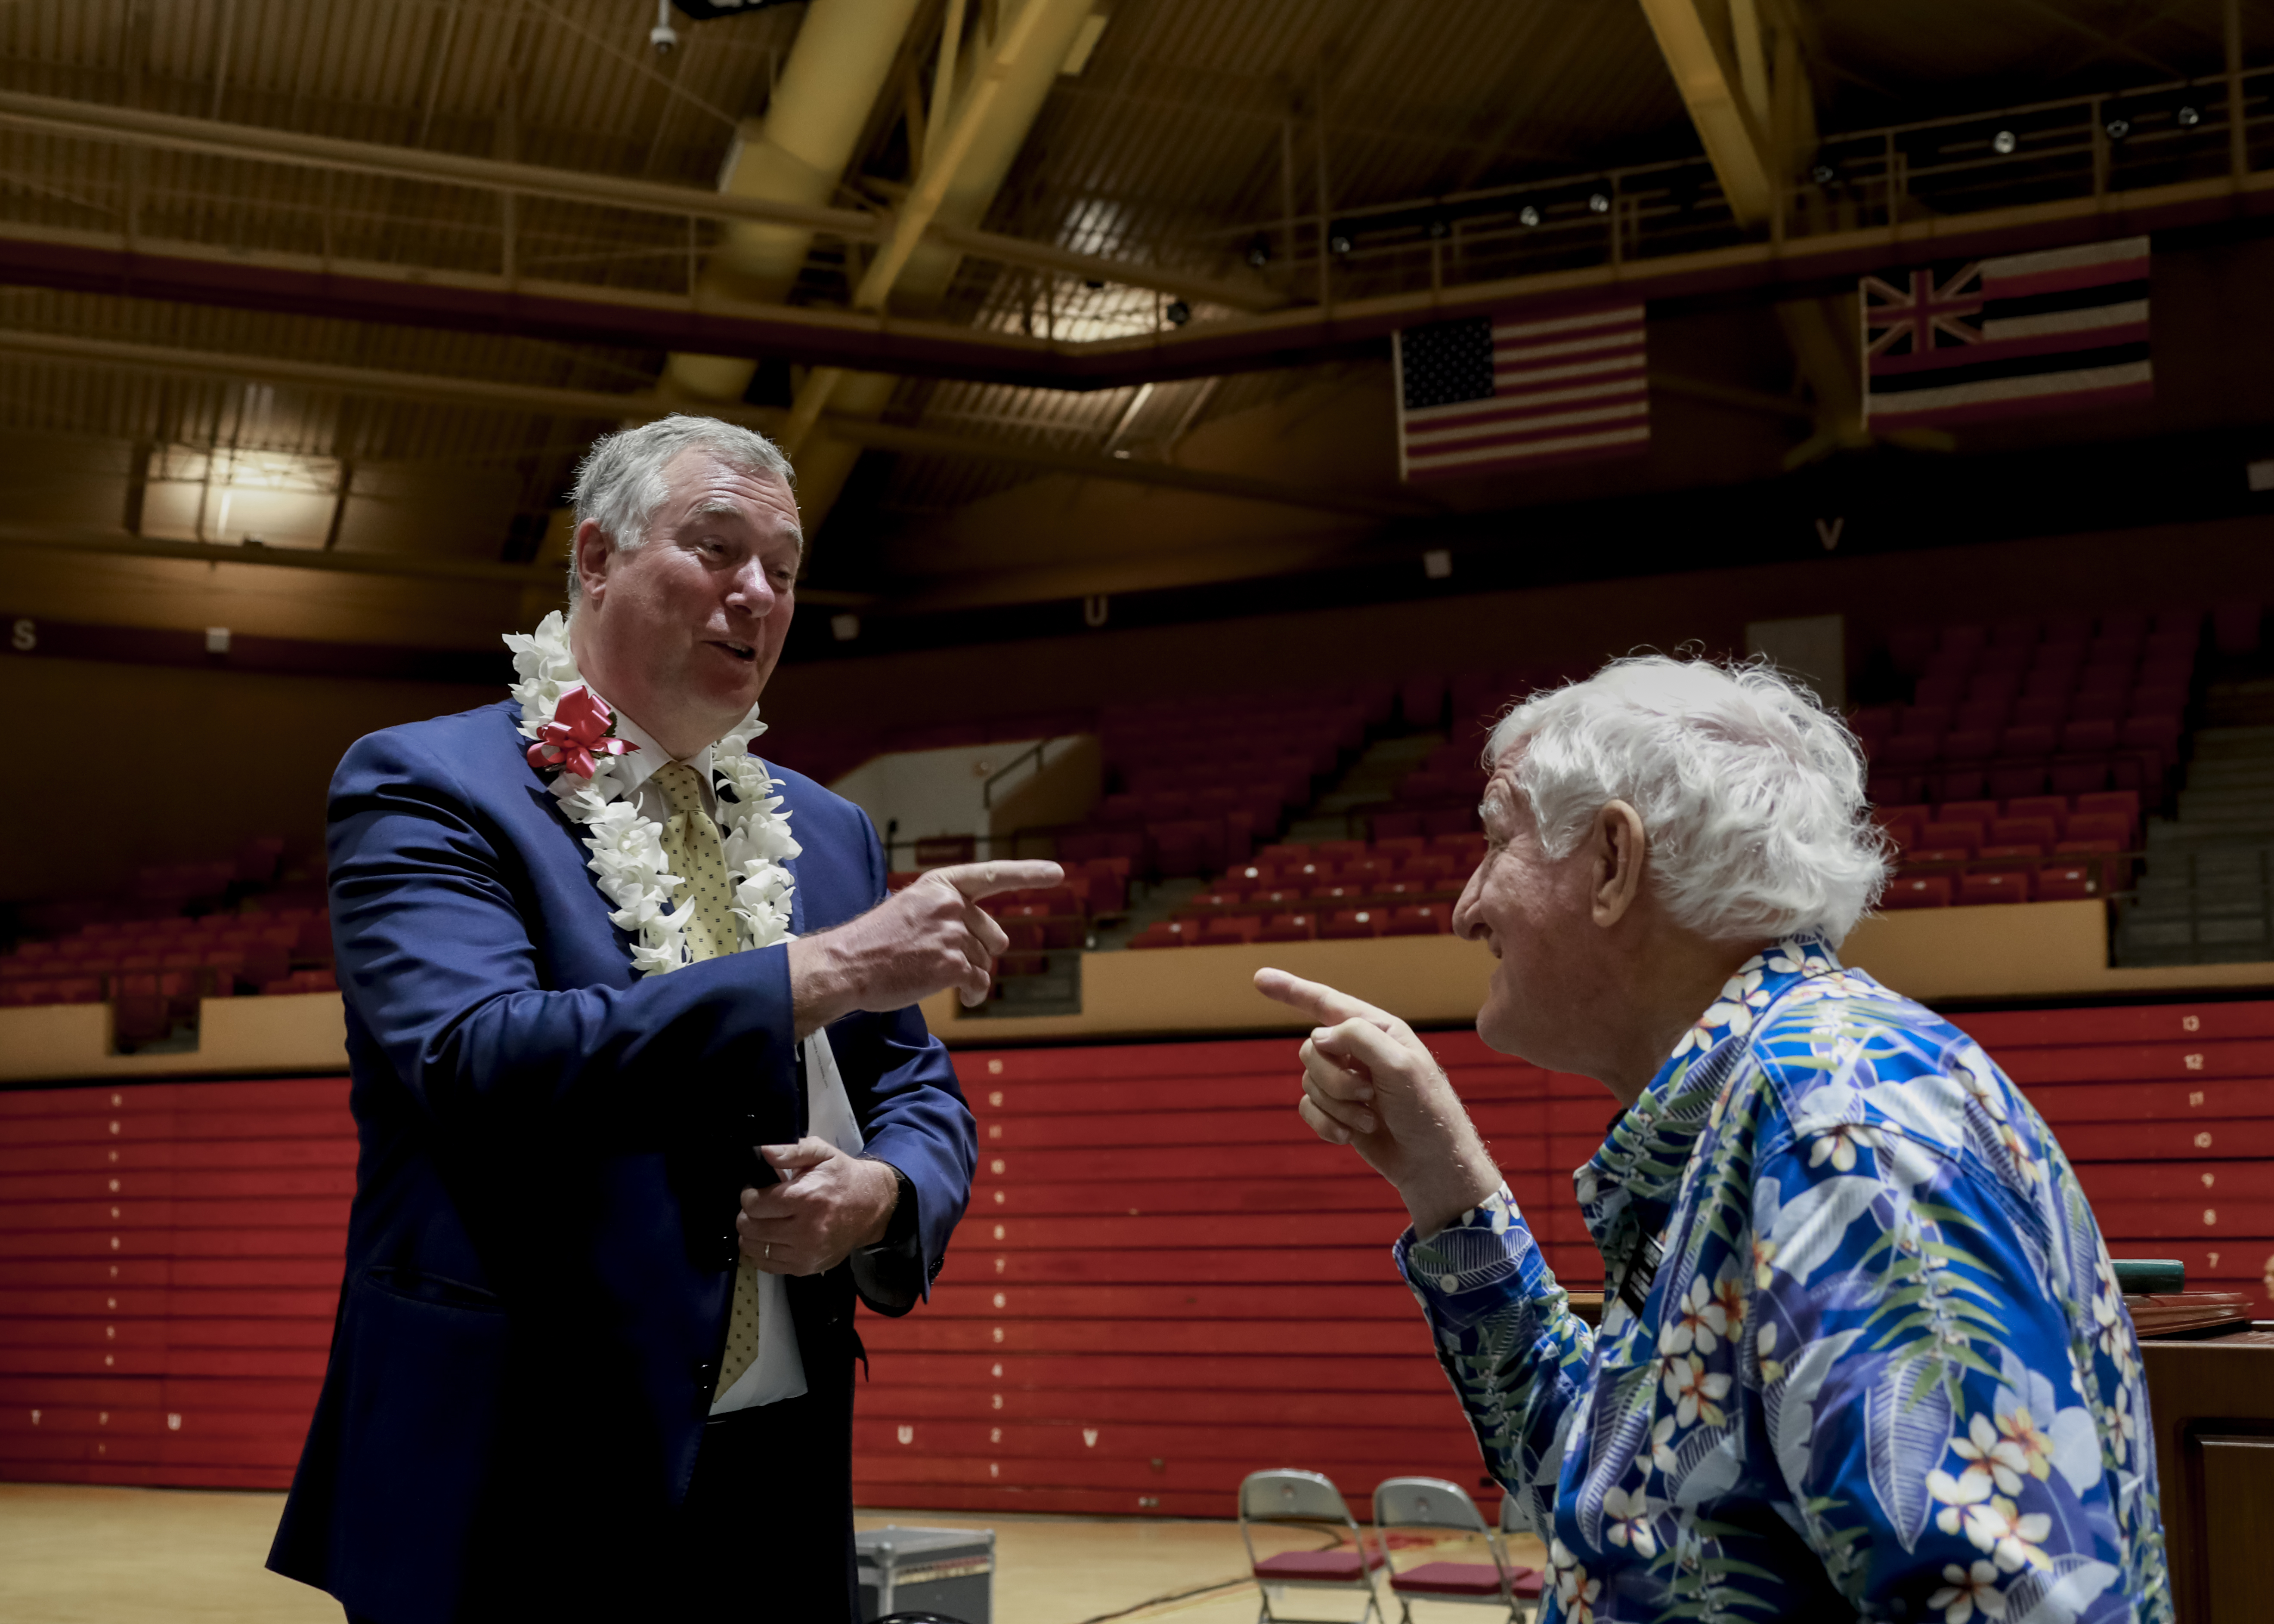 Elder Erich W. Kopischke mingles with attendees following his devotional address at BYU Hawaii on Tuesday, Feb. 19, 2019.